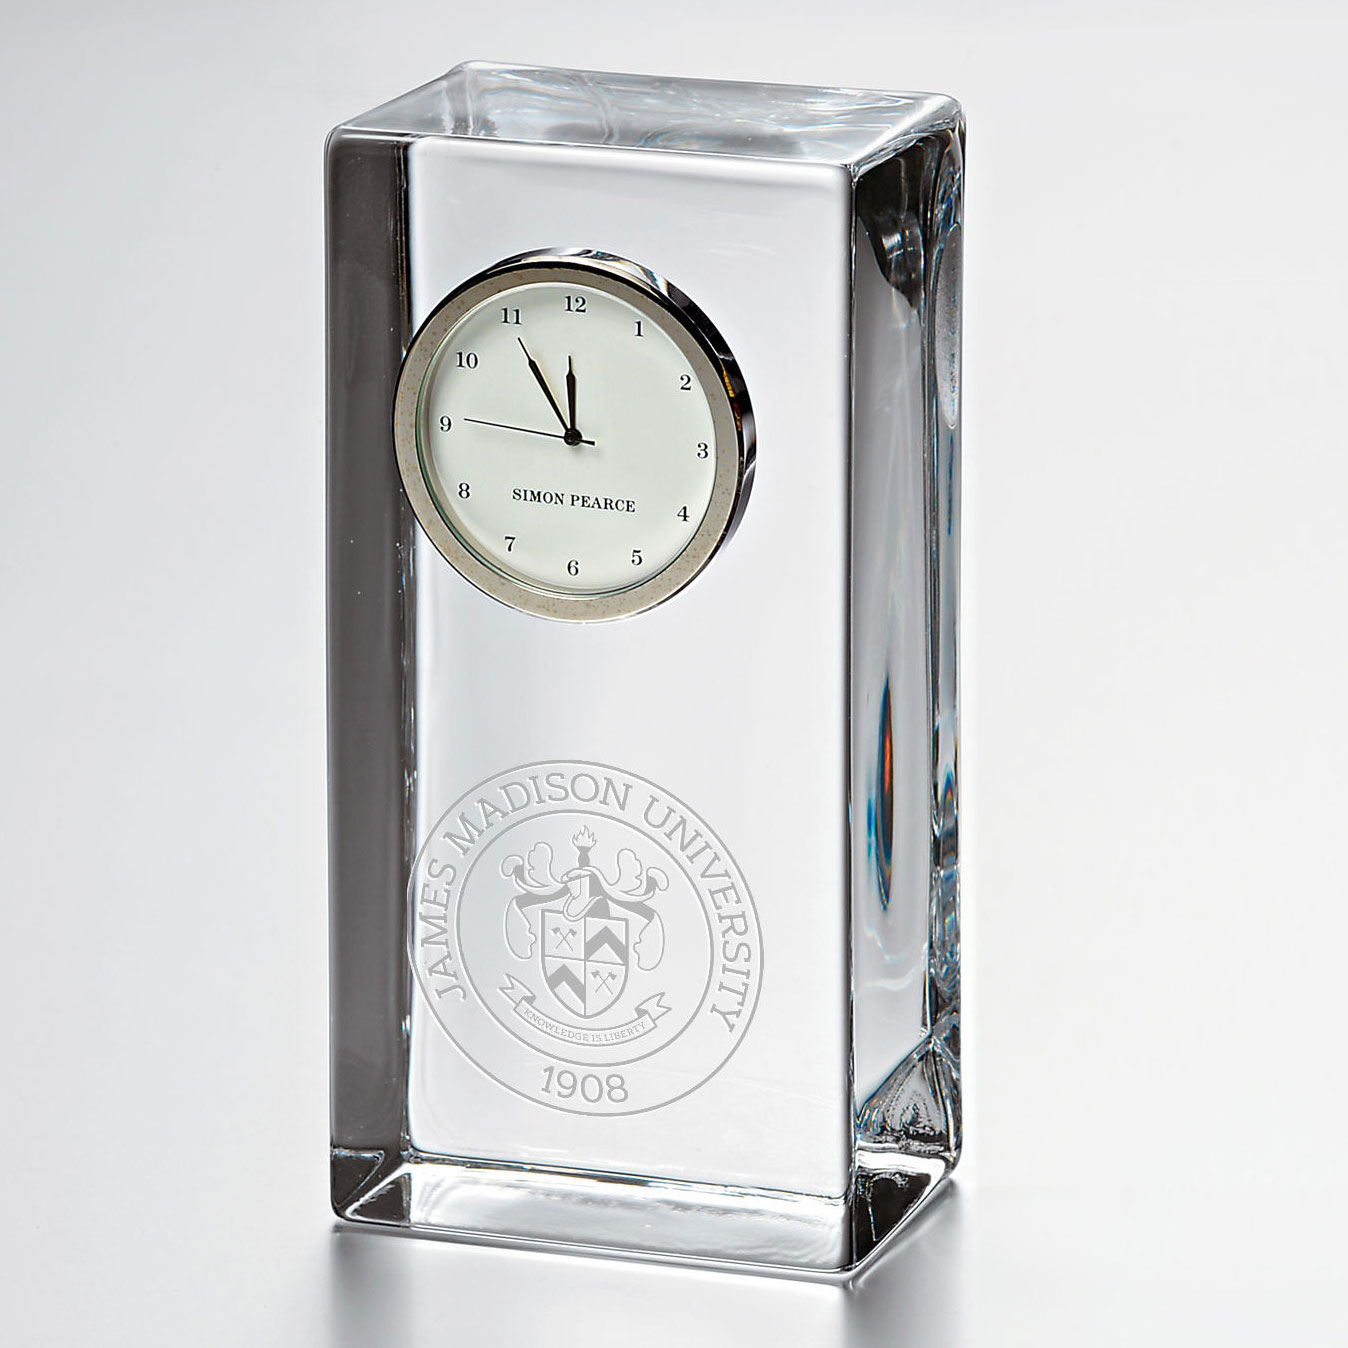 James Madison Tall Glass Desk Clock by Simon Pearce